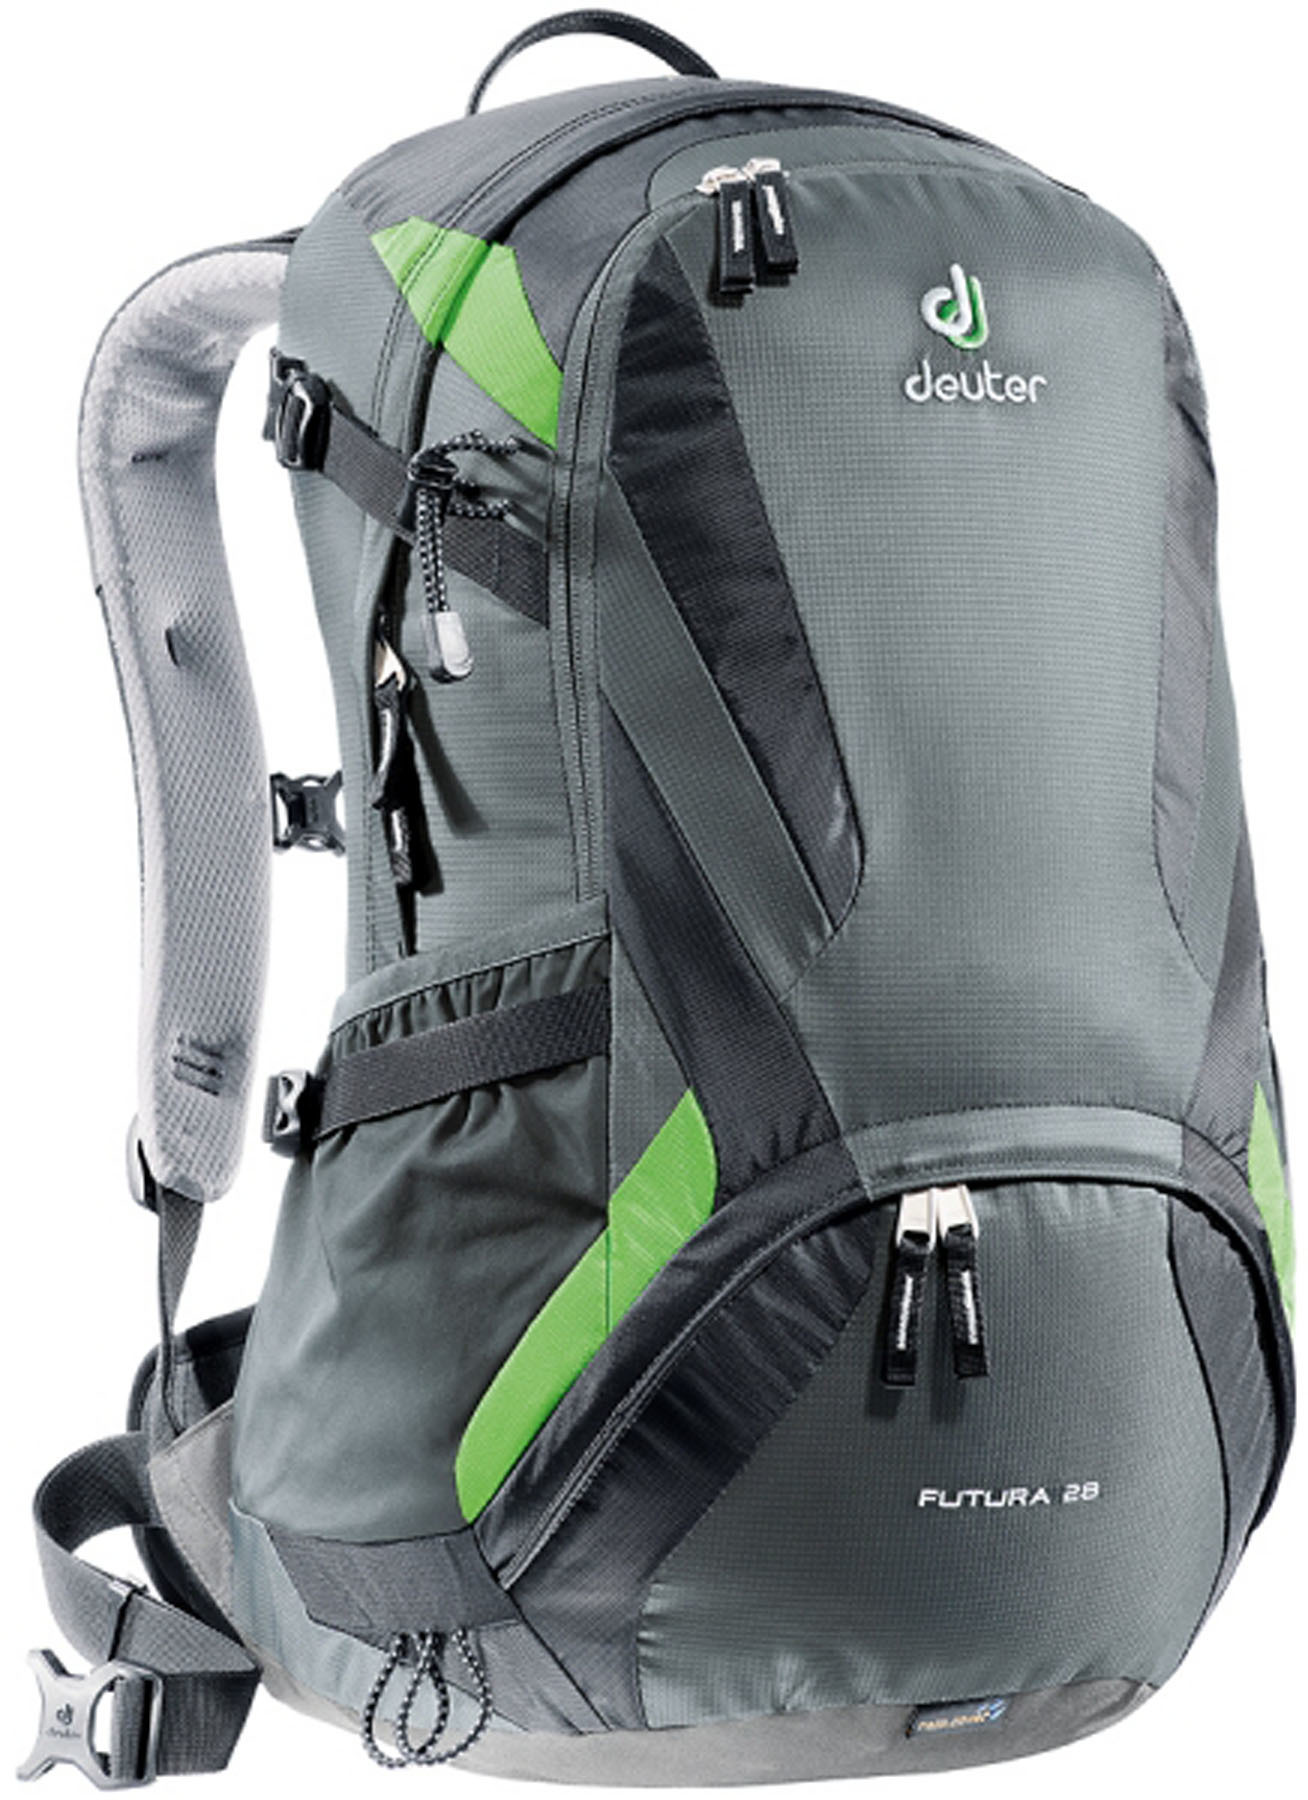 Deuter Futura 28 Hiking Bag (Granite/Black)